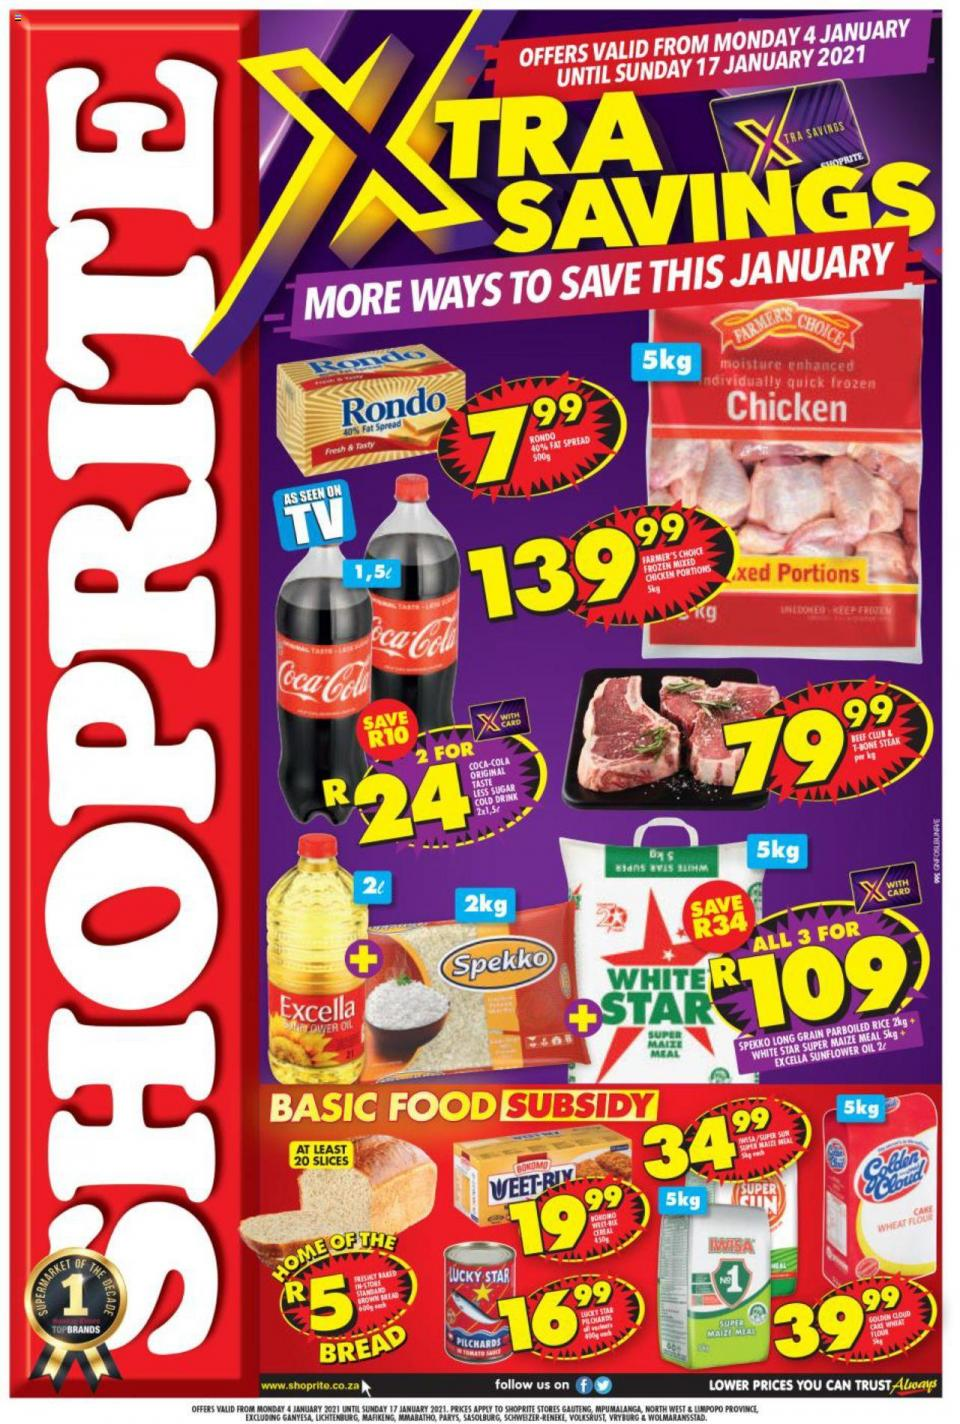 shoprite specials exclusive deals 4 january 2021